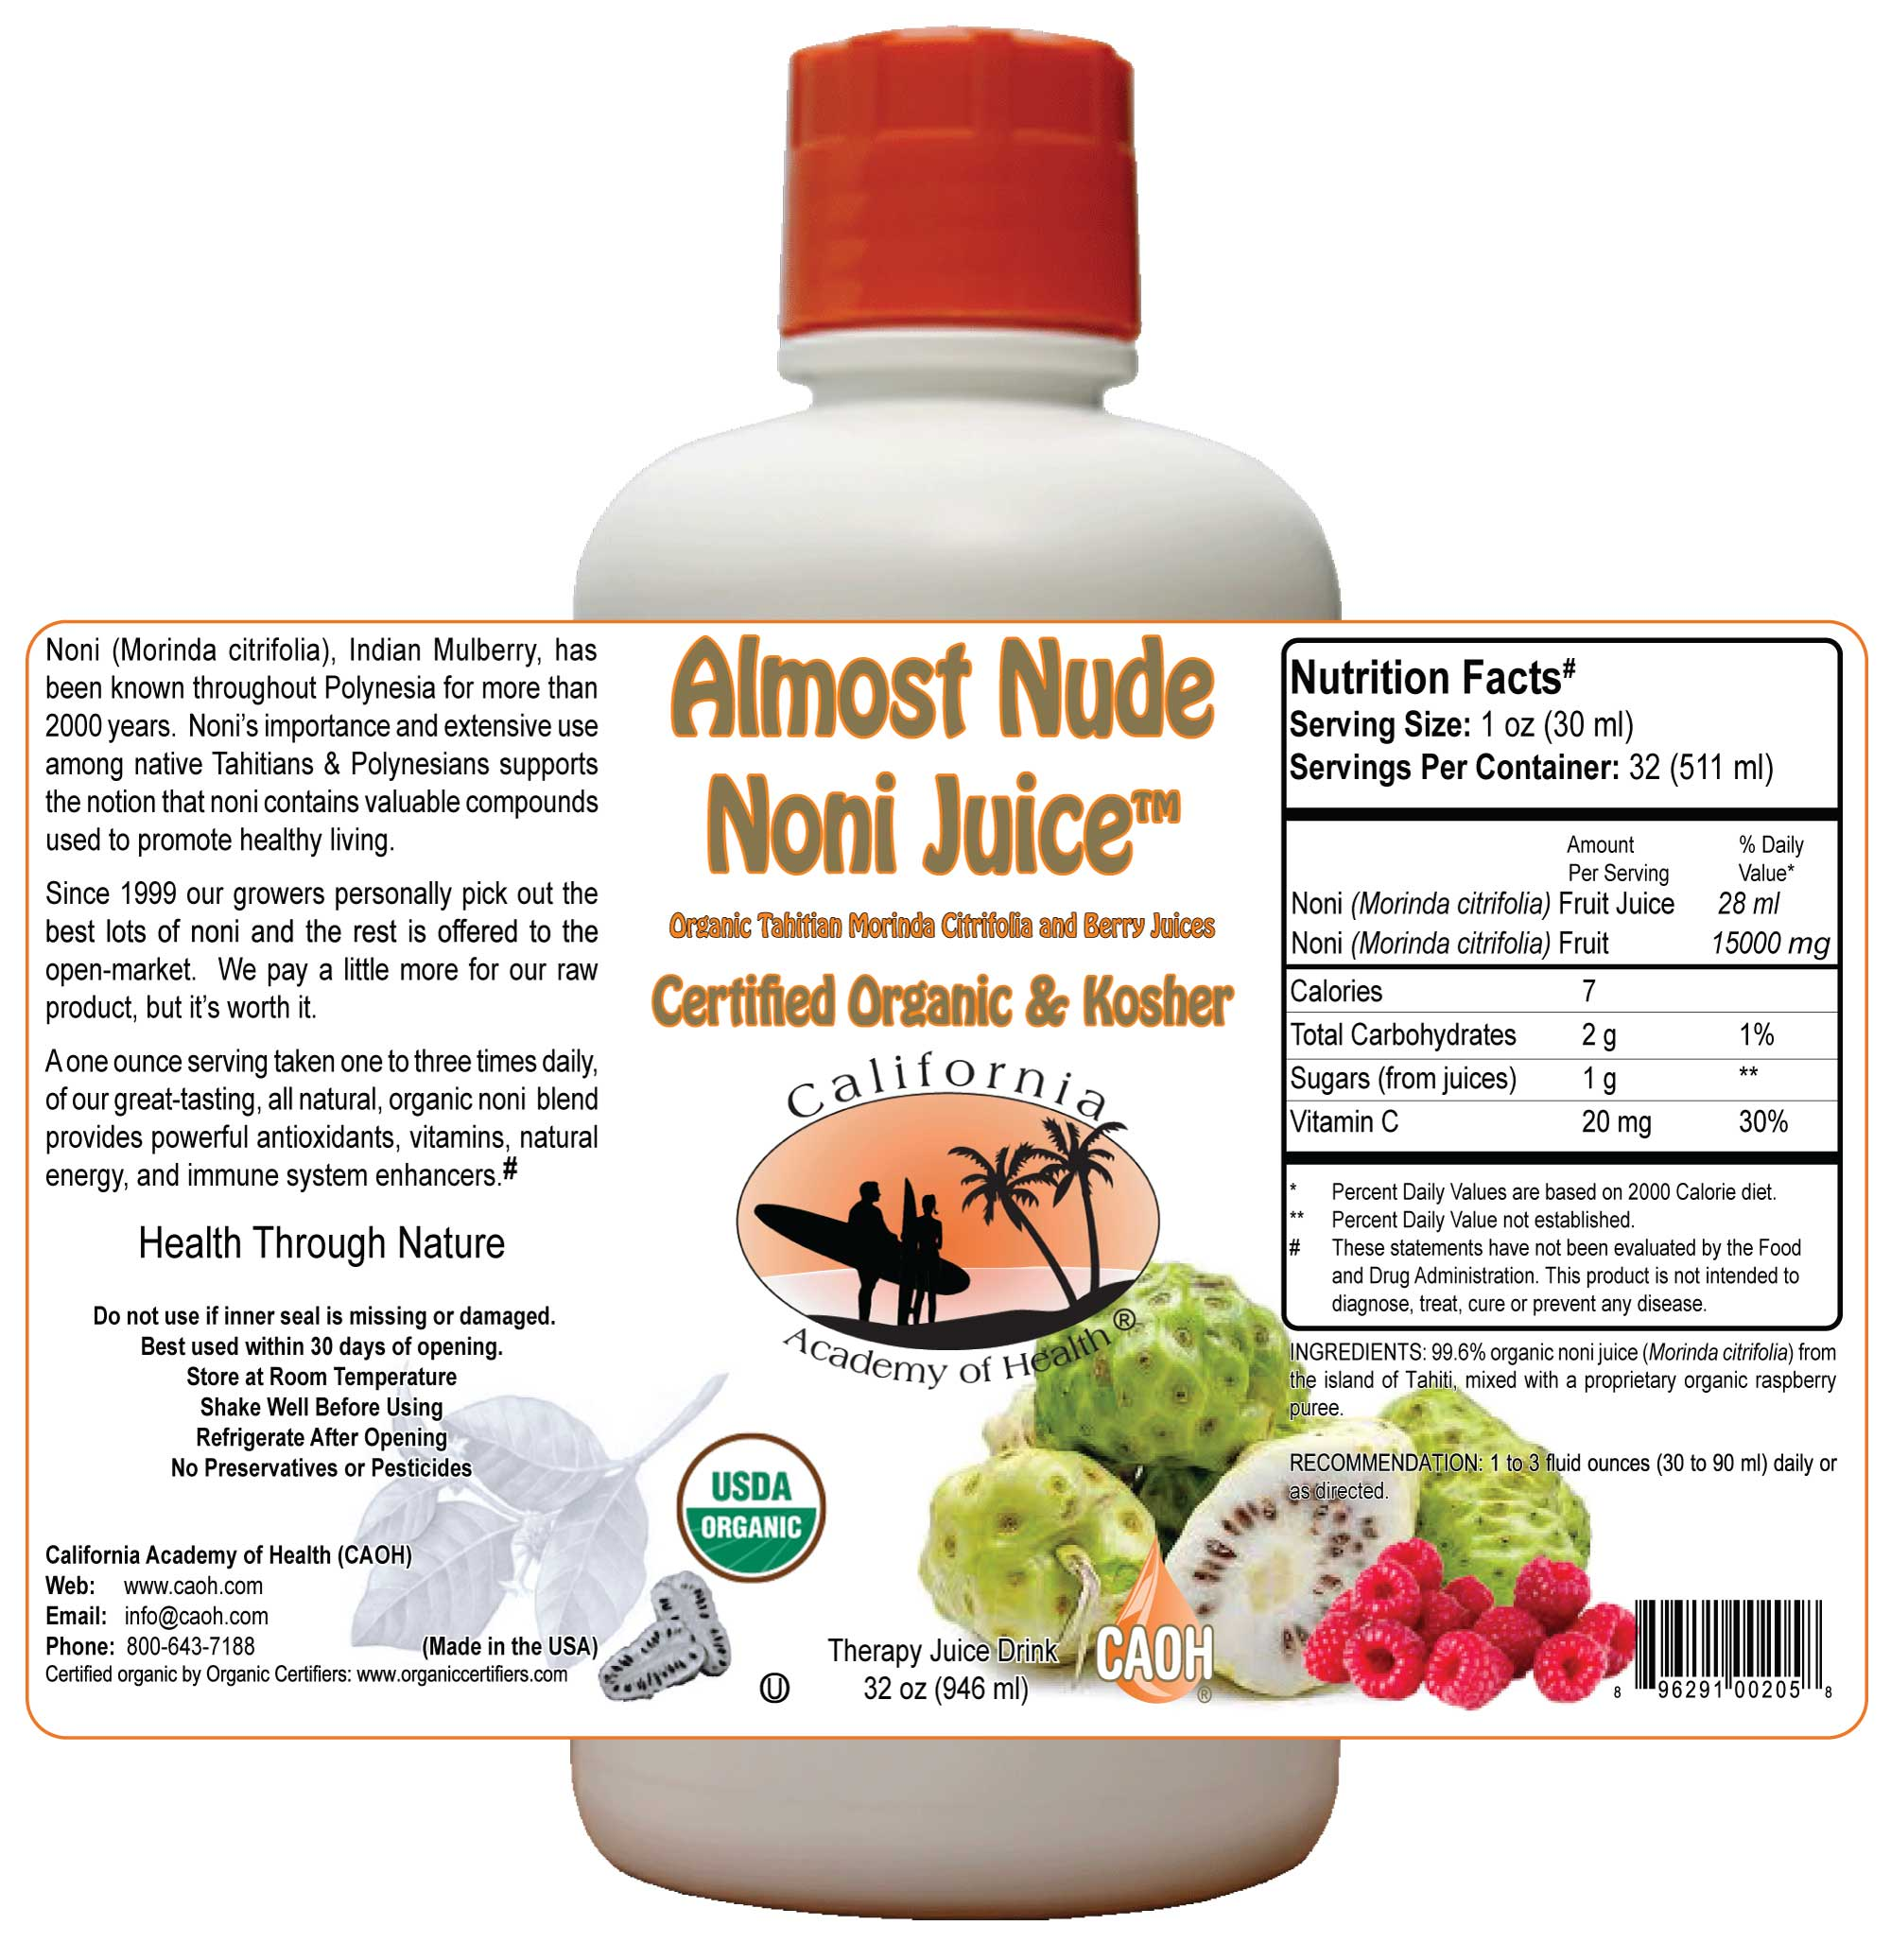 Wholesale Almost Nude Noni Juice<br>24 Minimum